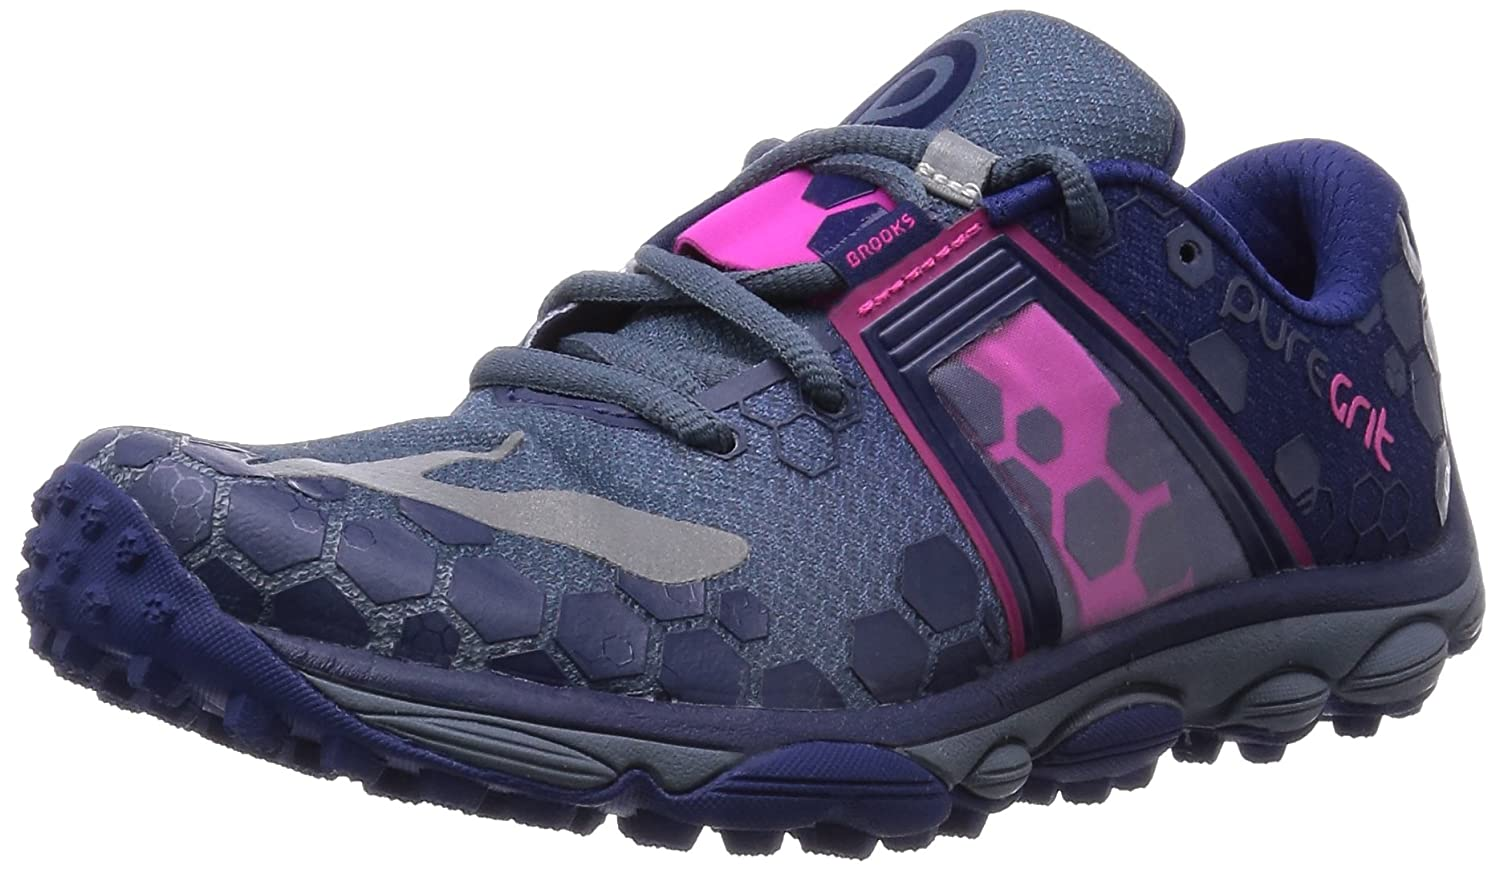 704aa8610bcb Brooks PureGrit 4, Women's Competition Running Shoes, Blue  (OmbreBlue/Blueprint/PinkGlo), 3.5 UK: Amazon.co.uk: Sports & Outdoors